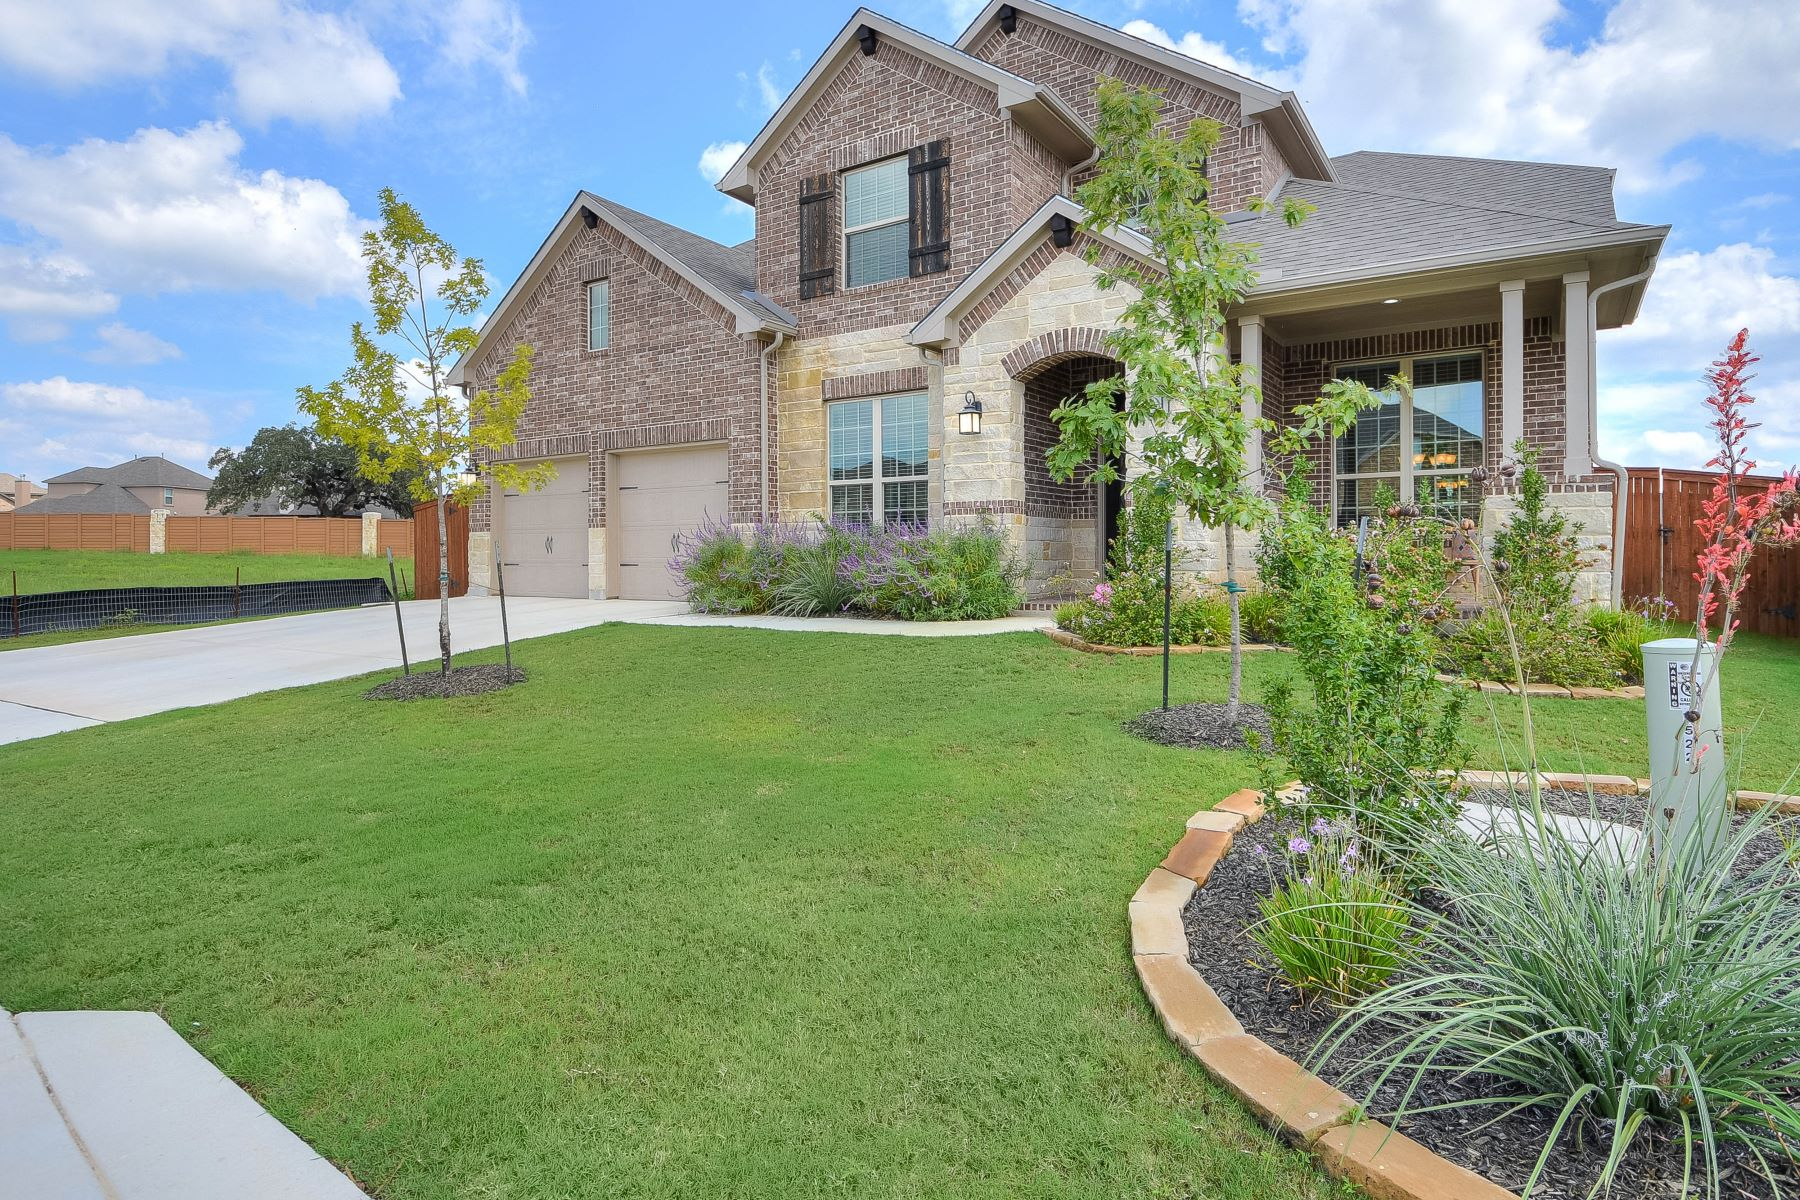 Single Family Home for Sale at Beautiful Highland Home in Stillwater Ranch 7522 Foss Aly, San Antonio, Texas, 78254 United States